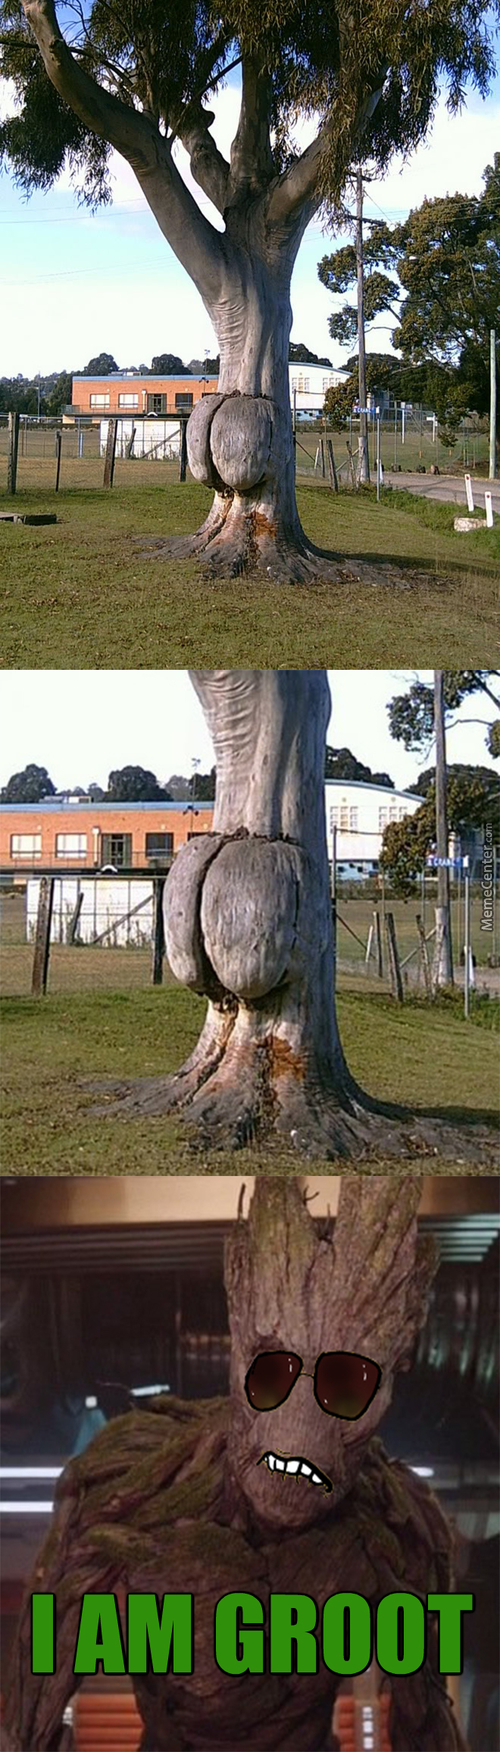 Look At Mother Nature Got Dat Junk In Dat Trunk